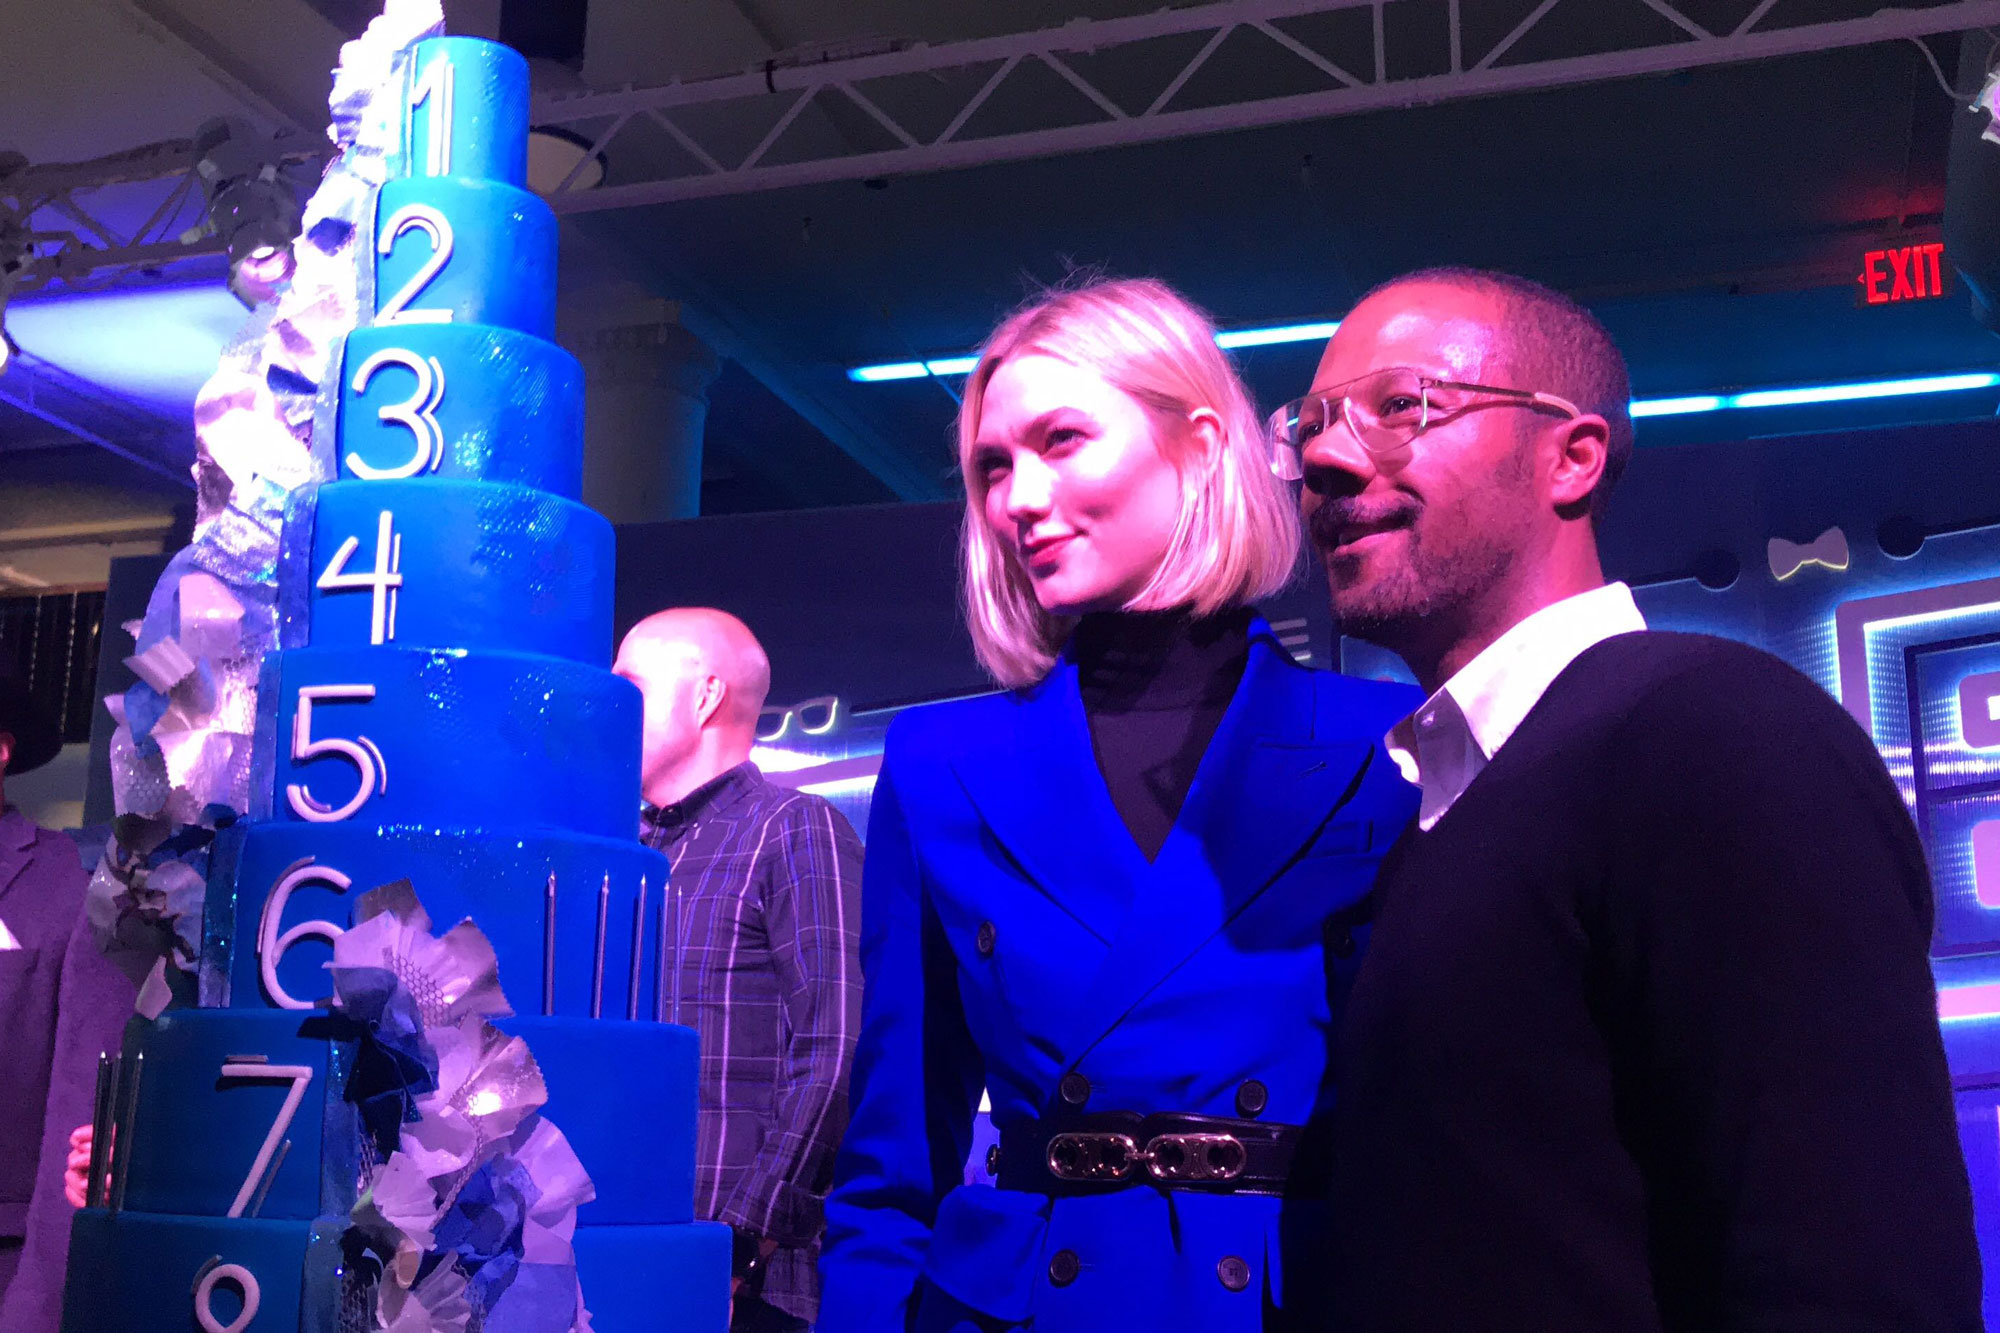 American Express celebrates 10th 'Small Business Saturday' with Karlie Kloss, Lin-Manuel Miranda and a glimpse of retail's future